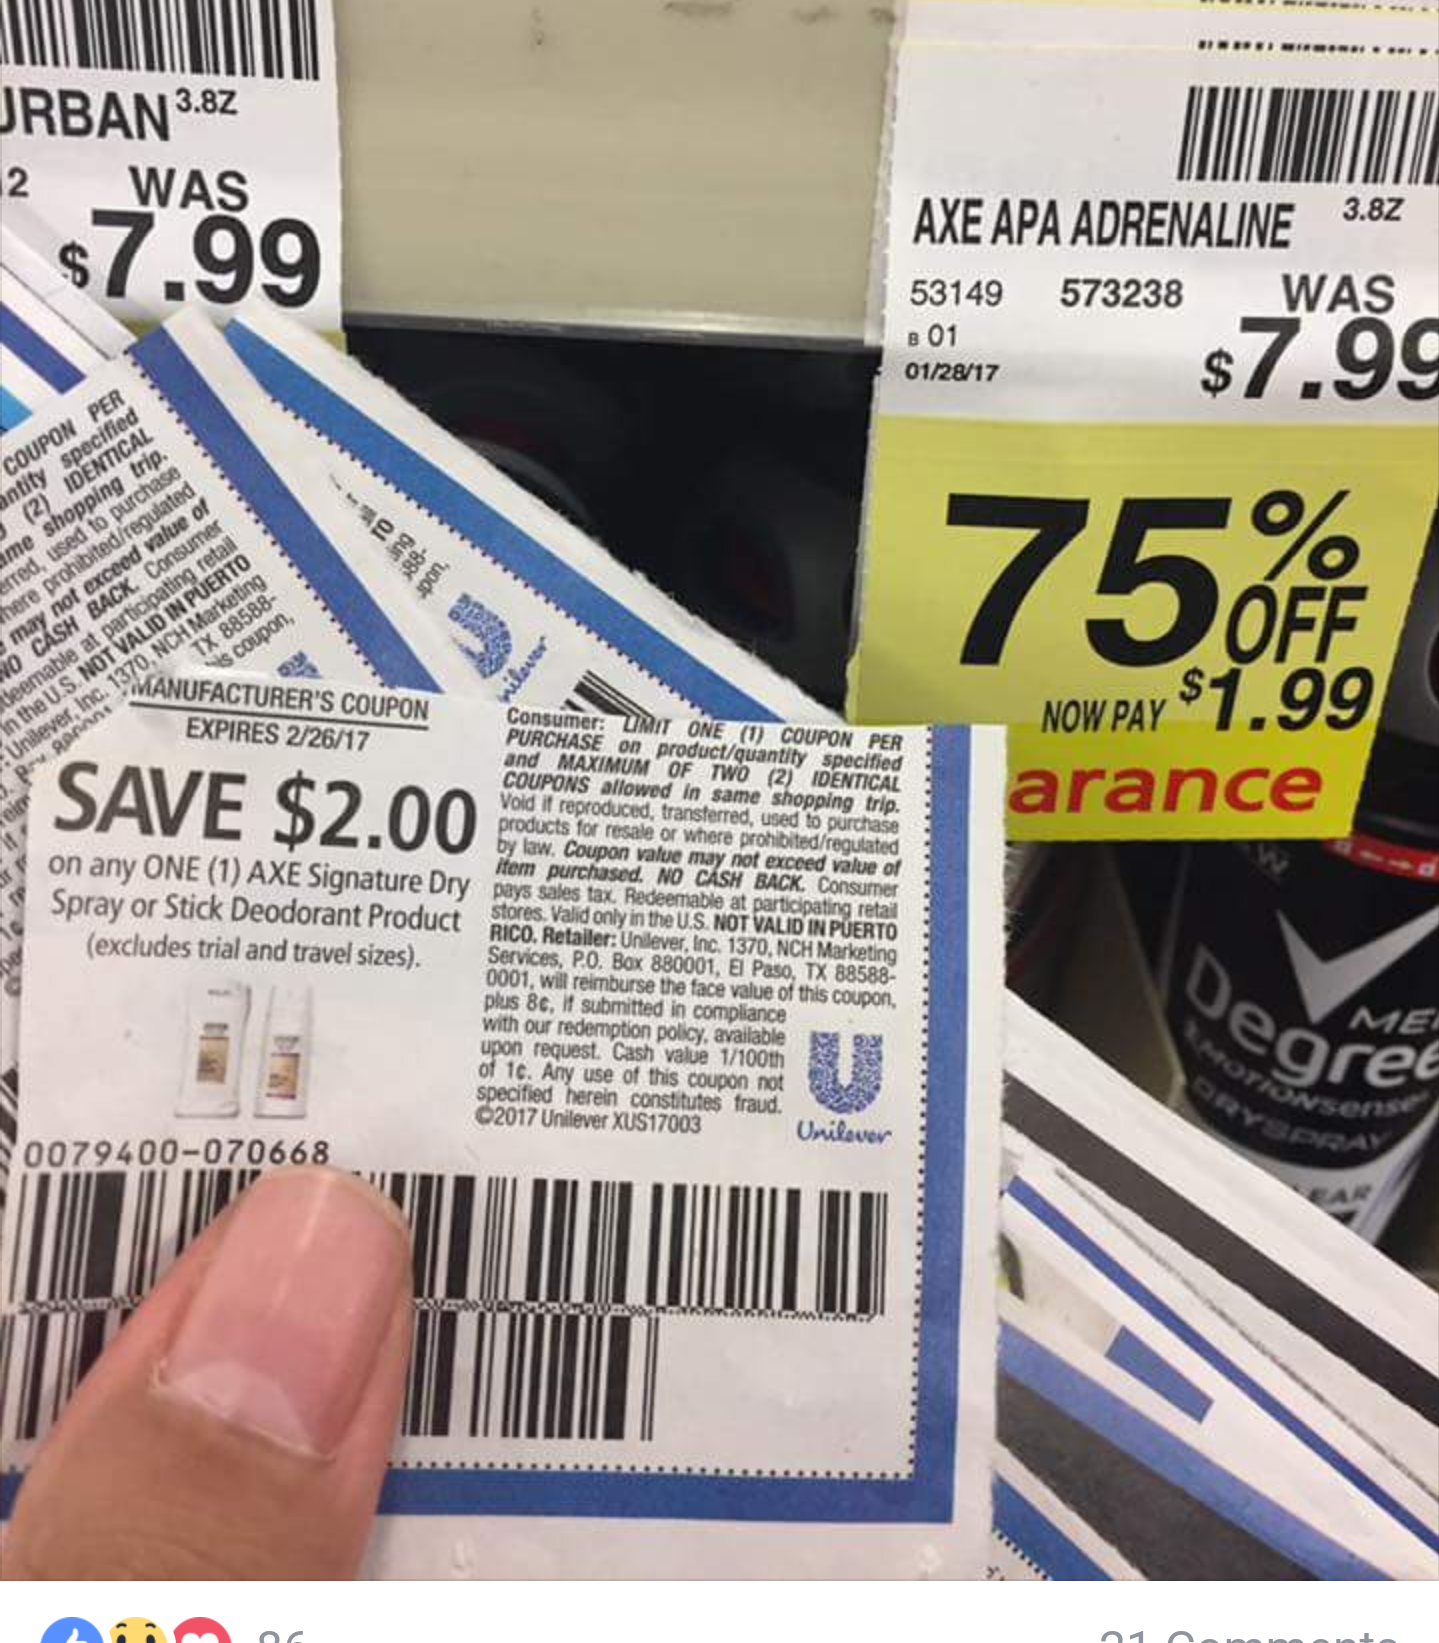 Free axe coupons